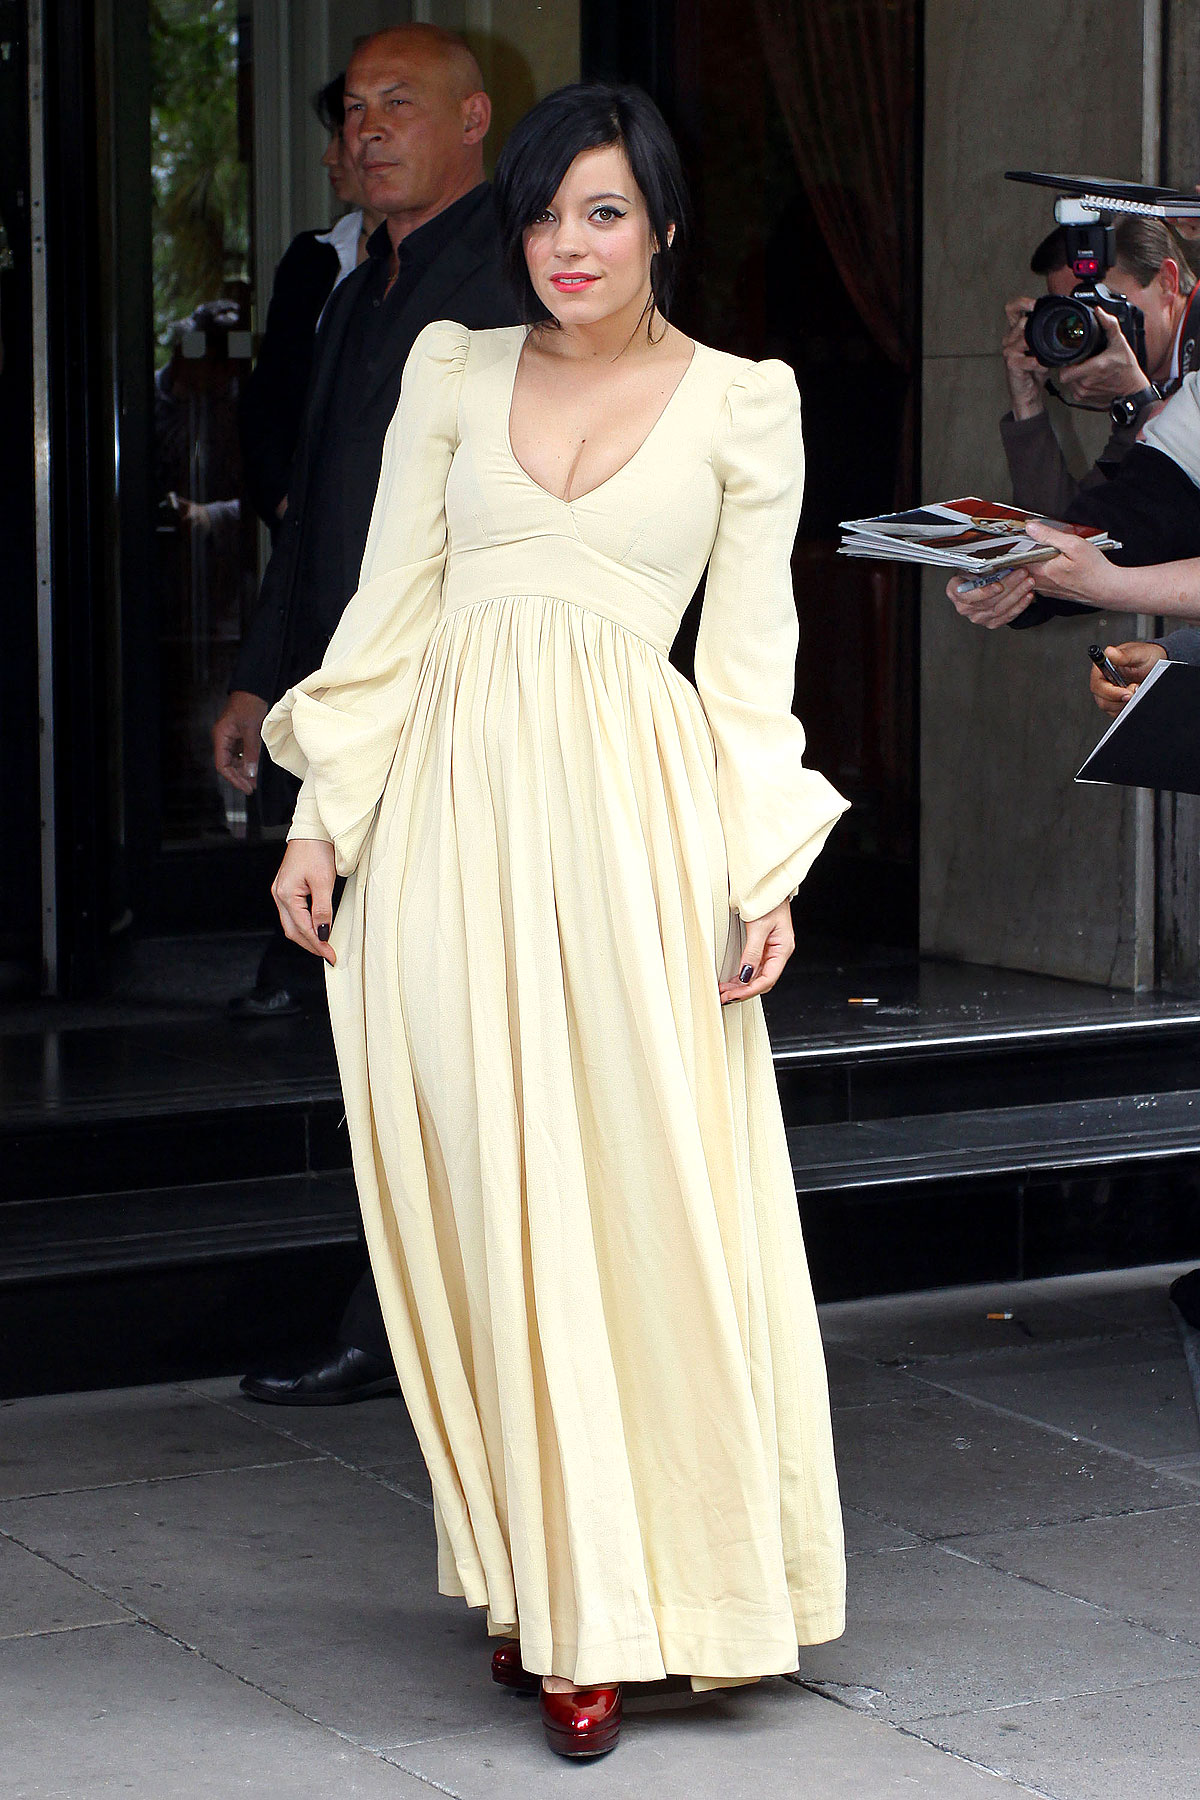 Fashion FTW: Lily Allen Blasts Back To The Regency Time Period (PHOTOS)